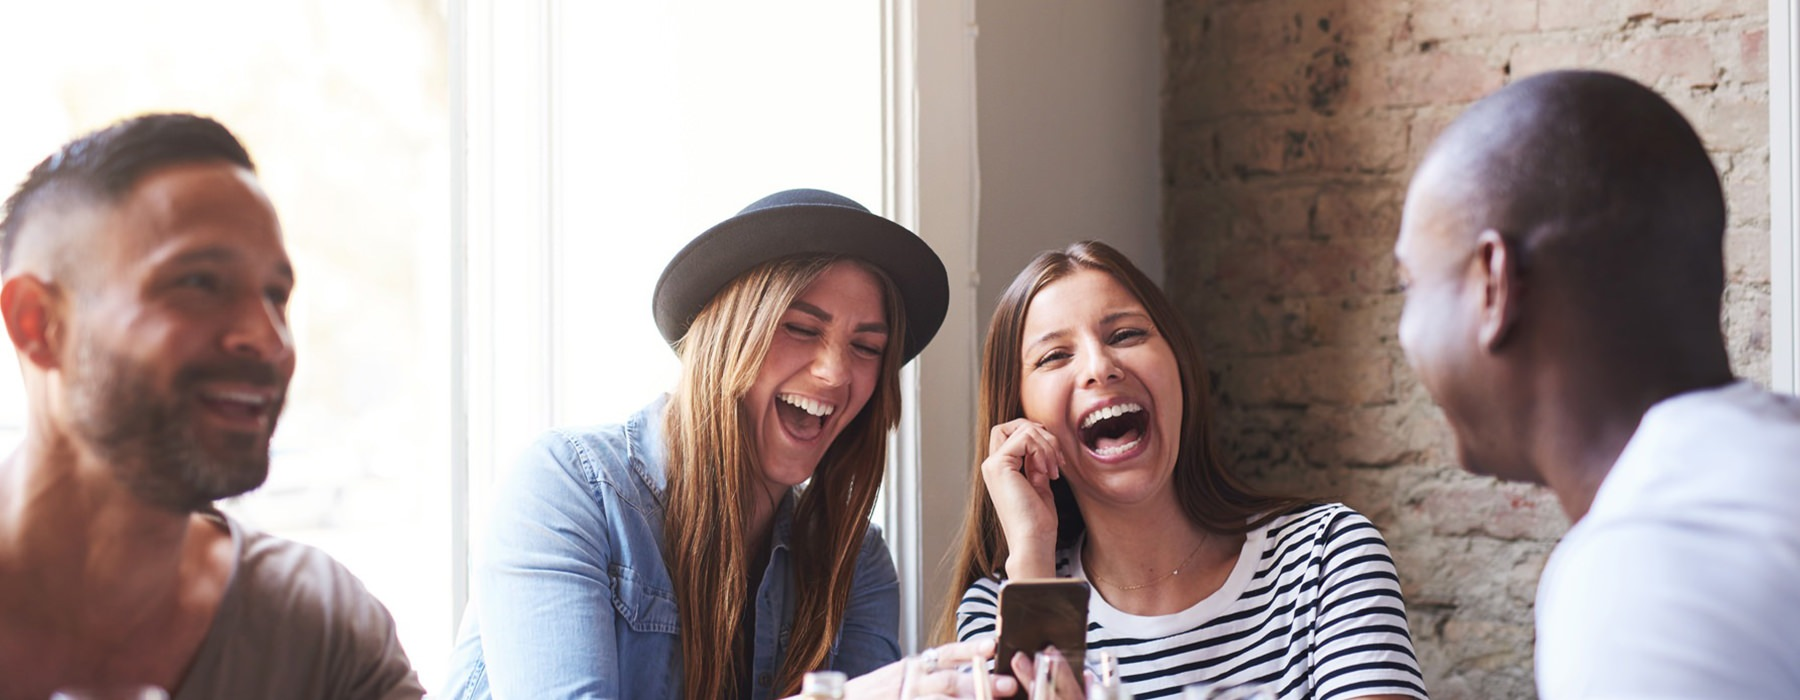 friends having drinks and laughing